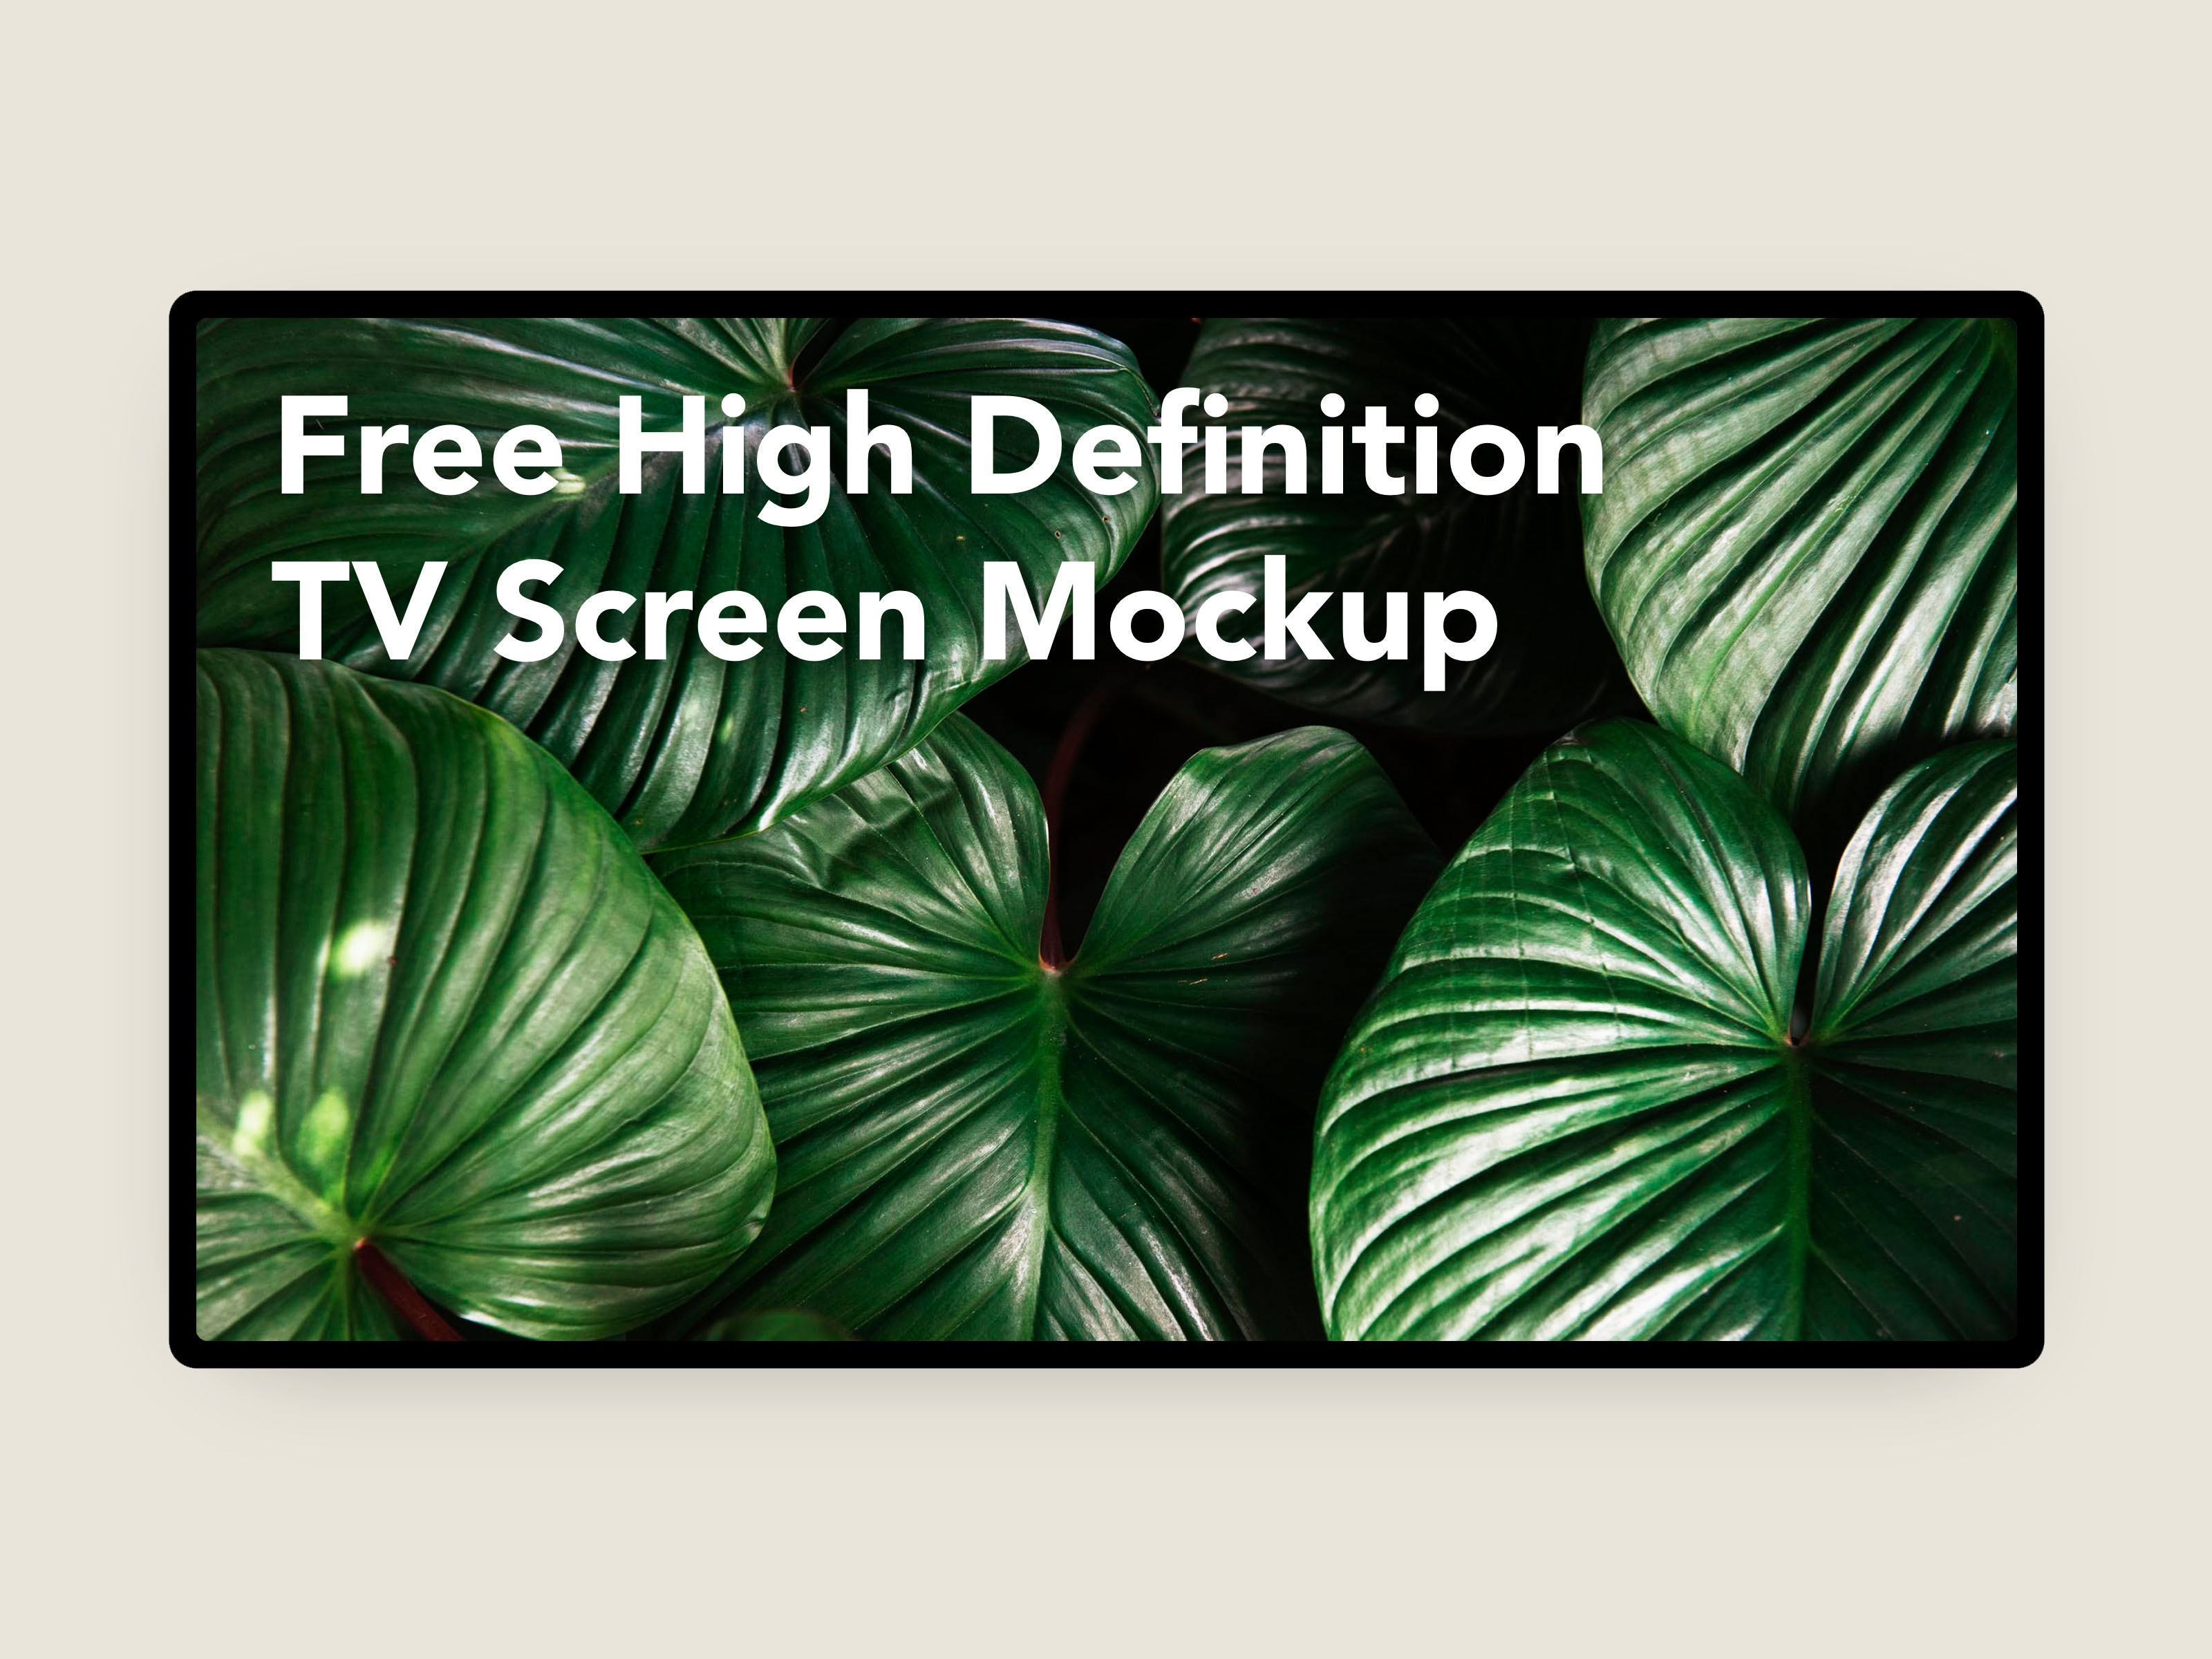 free-high-definition-tv-creen-mockup